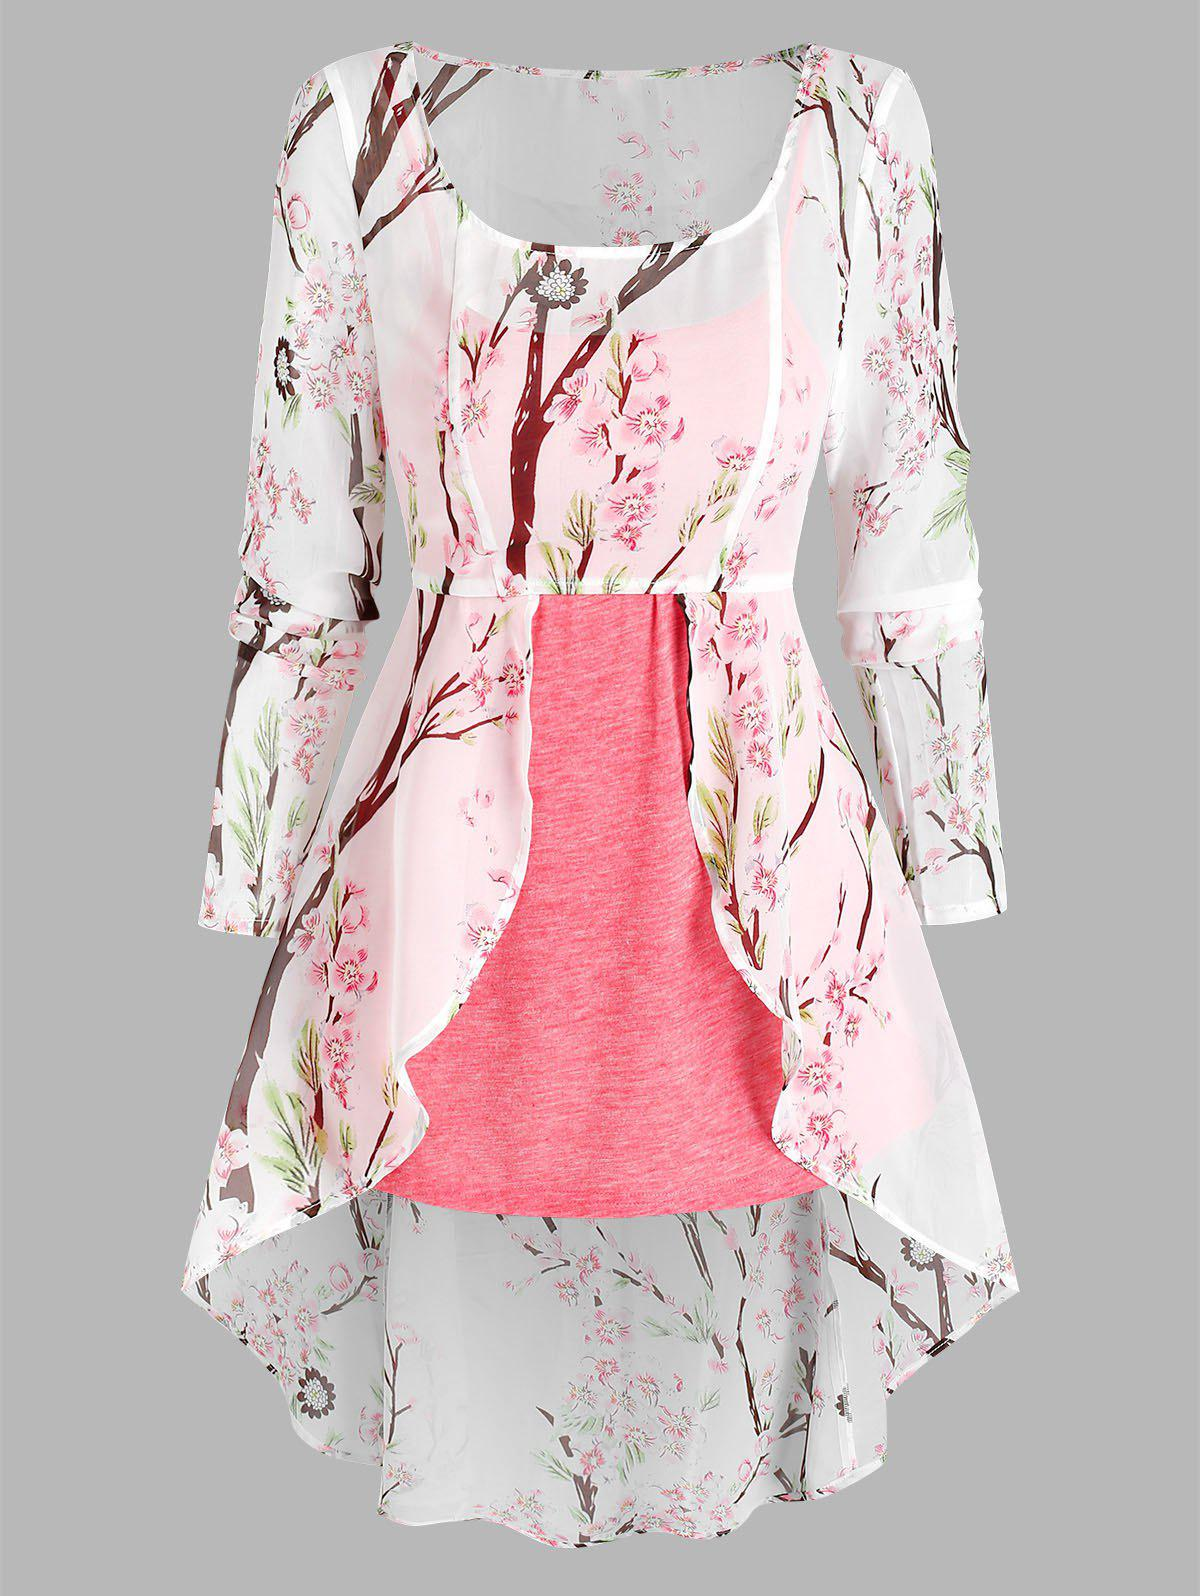 New Floral Print Lace-up High Low Chiffon Blouse and Heathered Tank Top